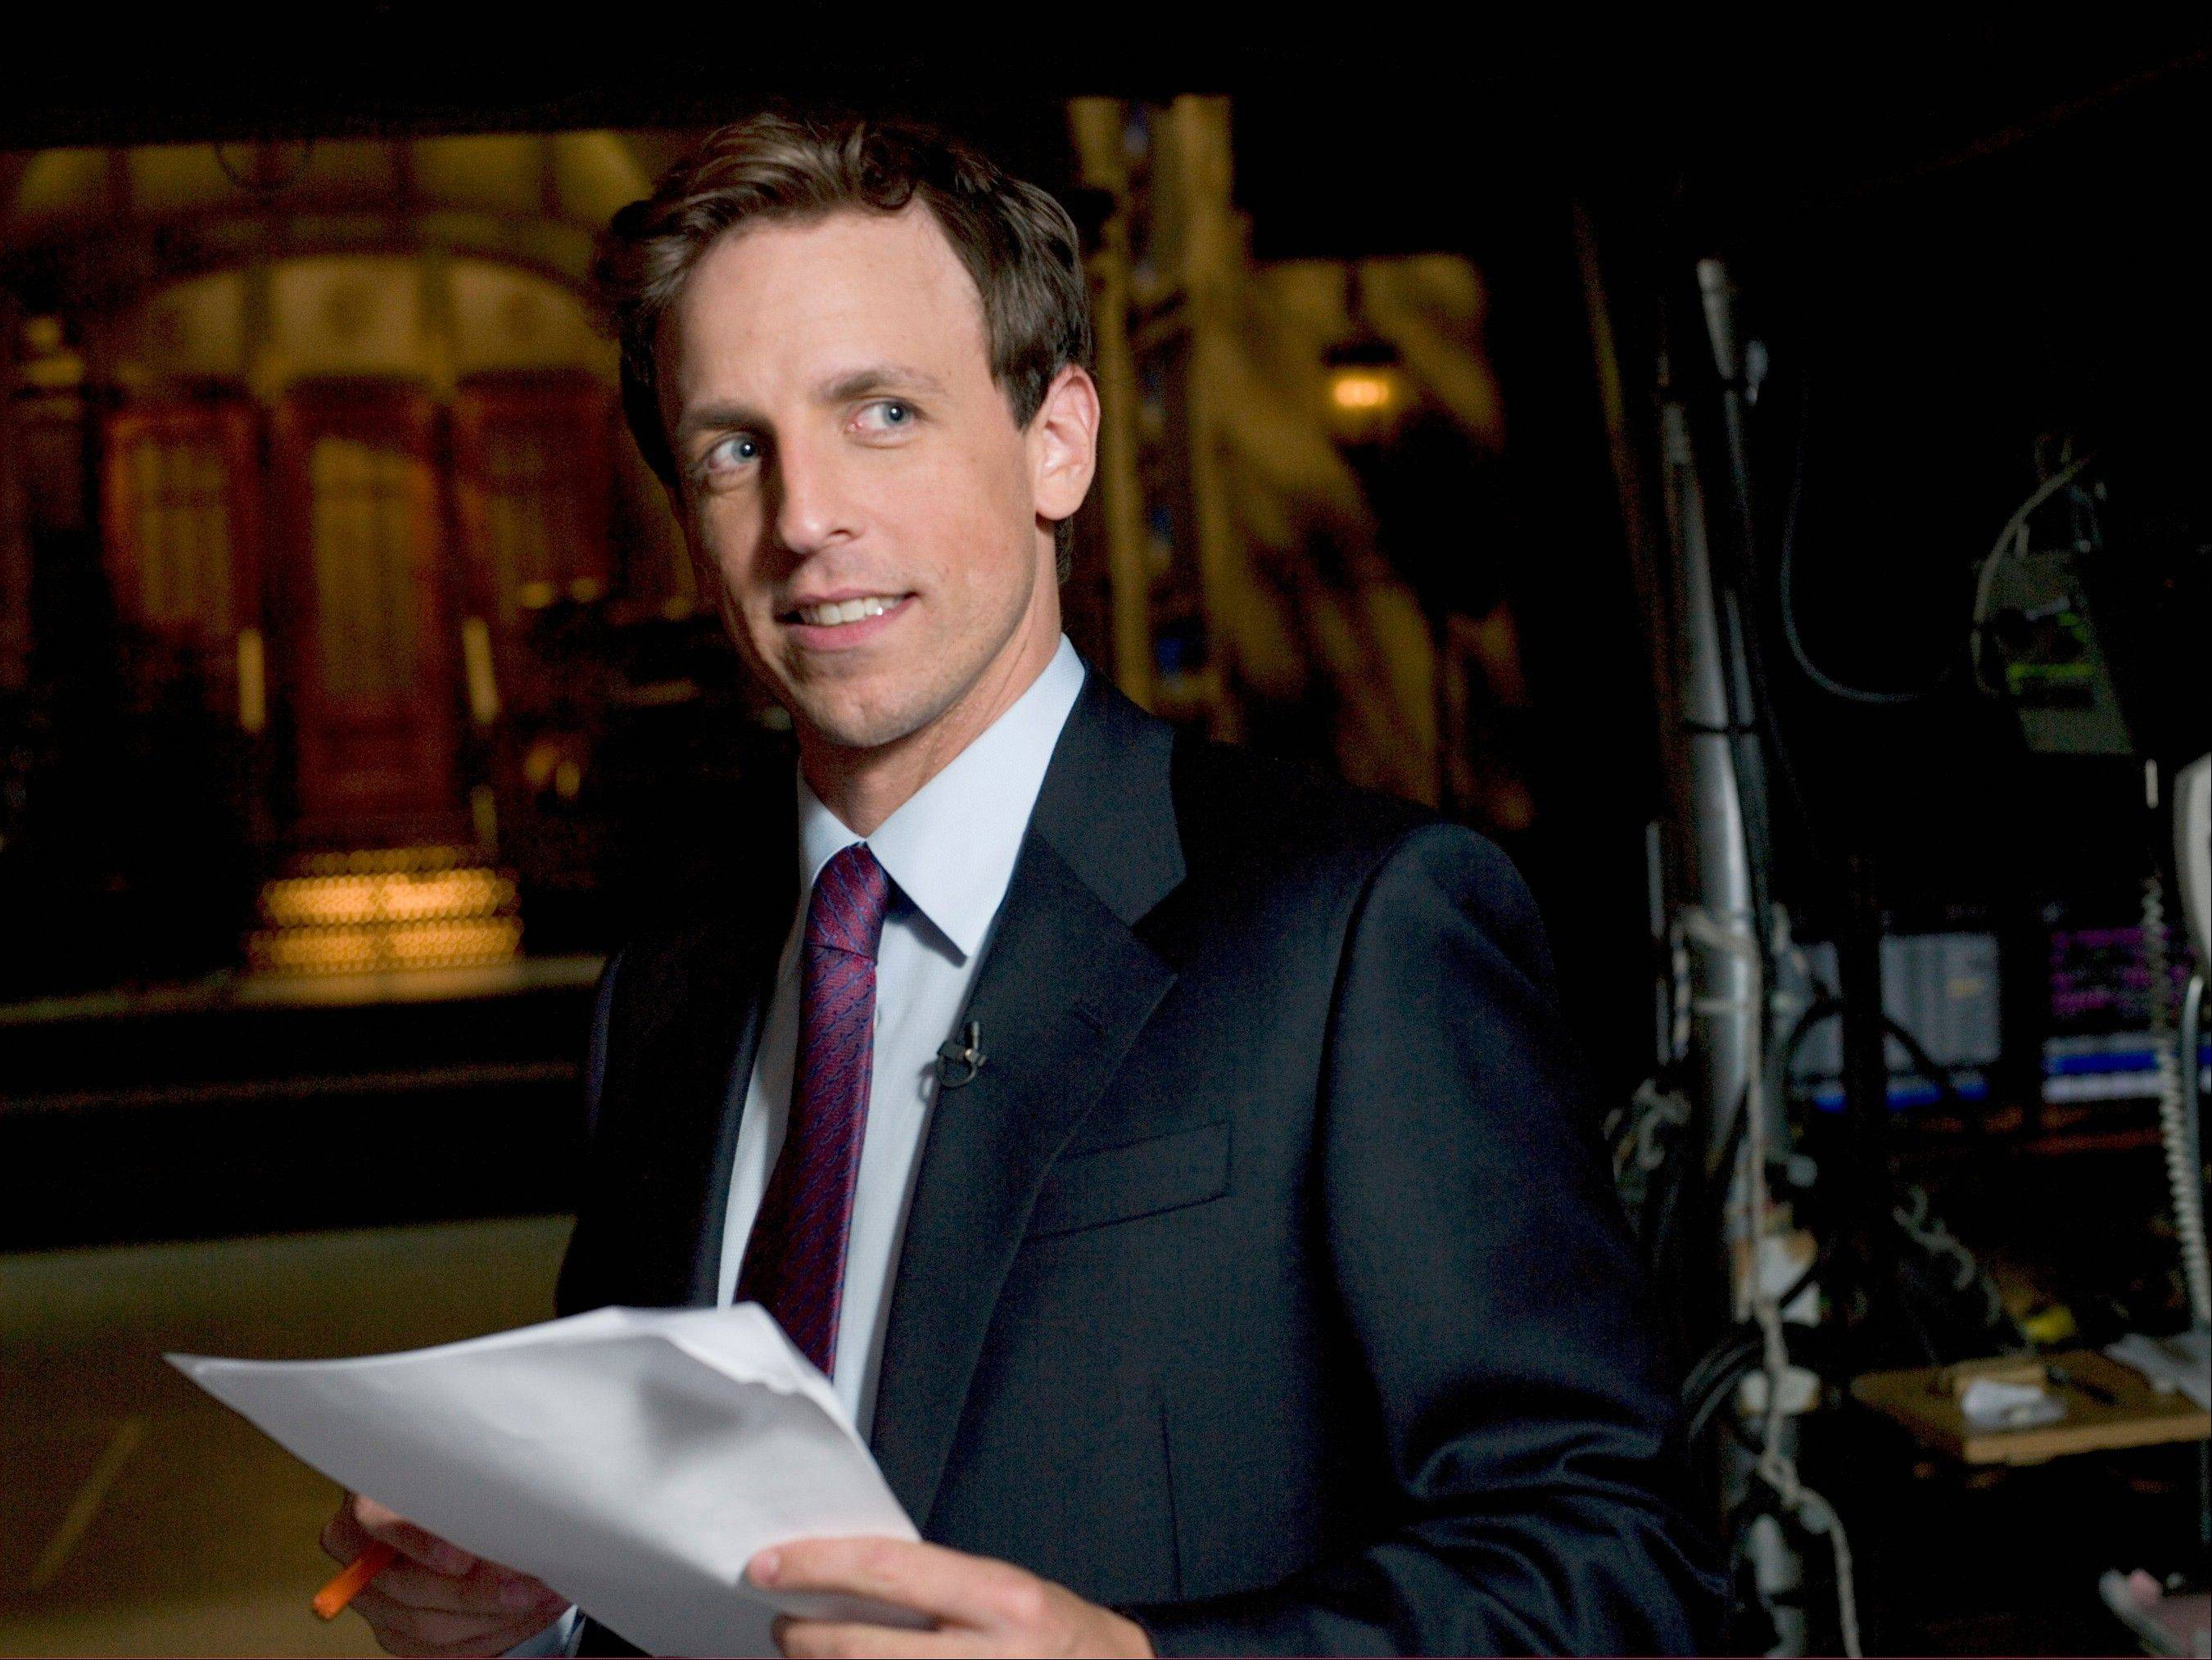 Seth Meyers is one of the big names headed to town for TBS Just for Laughs Chicago. See him at 7:30 p.m. Friday, June 14, at the Chicago Theatre.